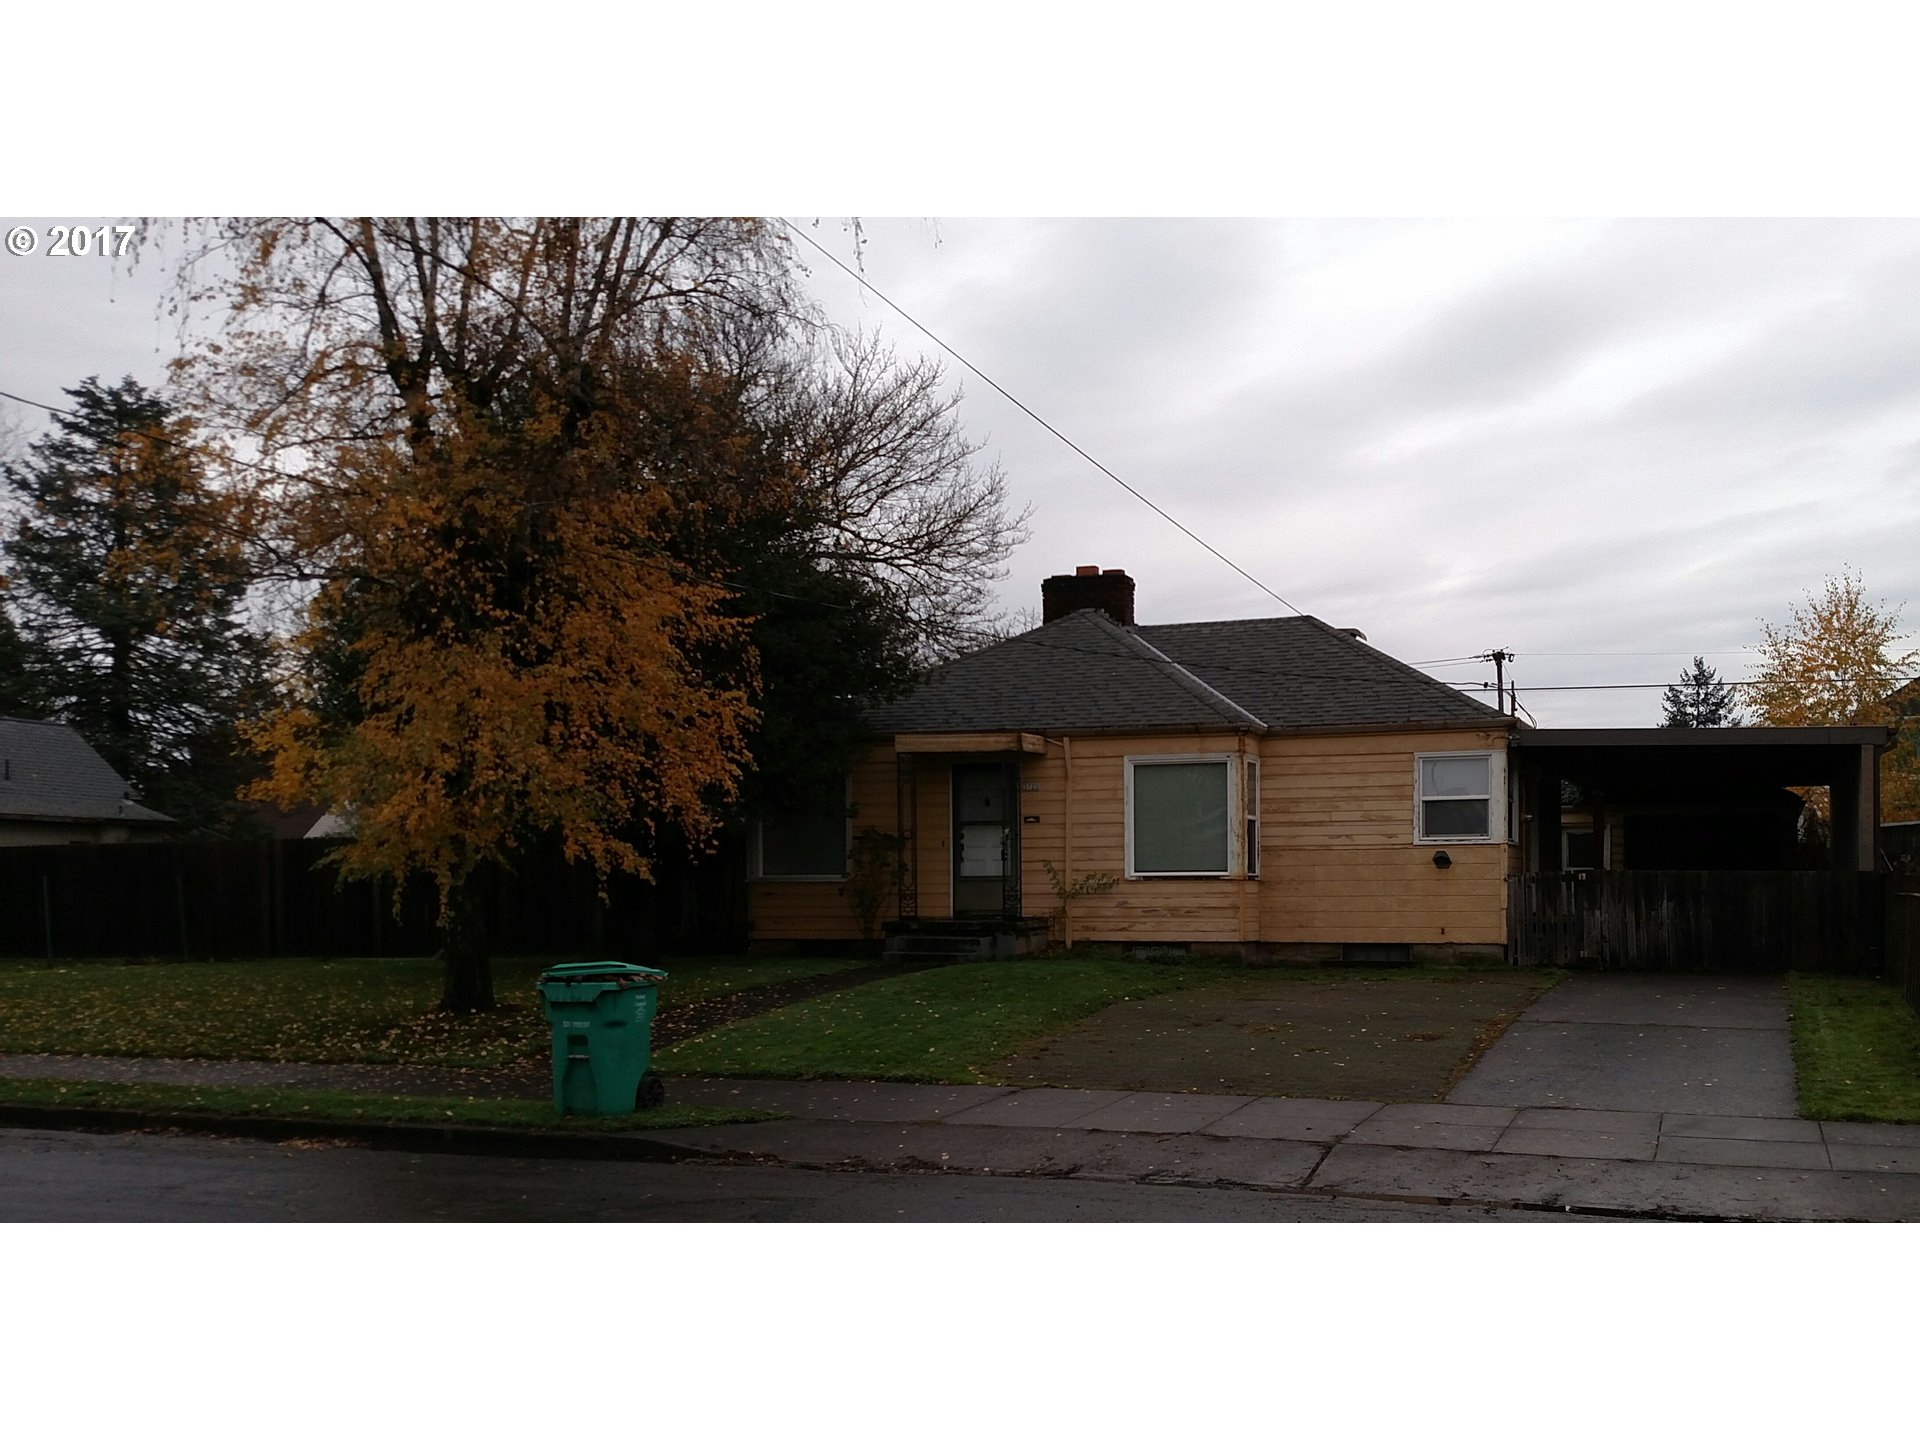 3720 SE 67TH AVE, Portland OR 97206